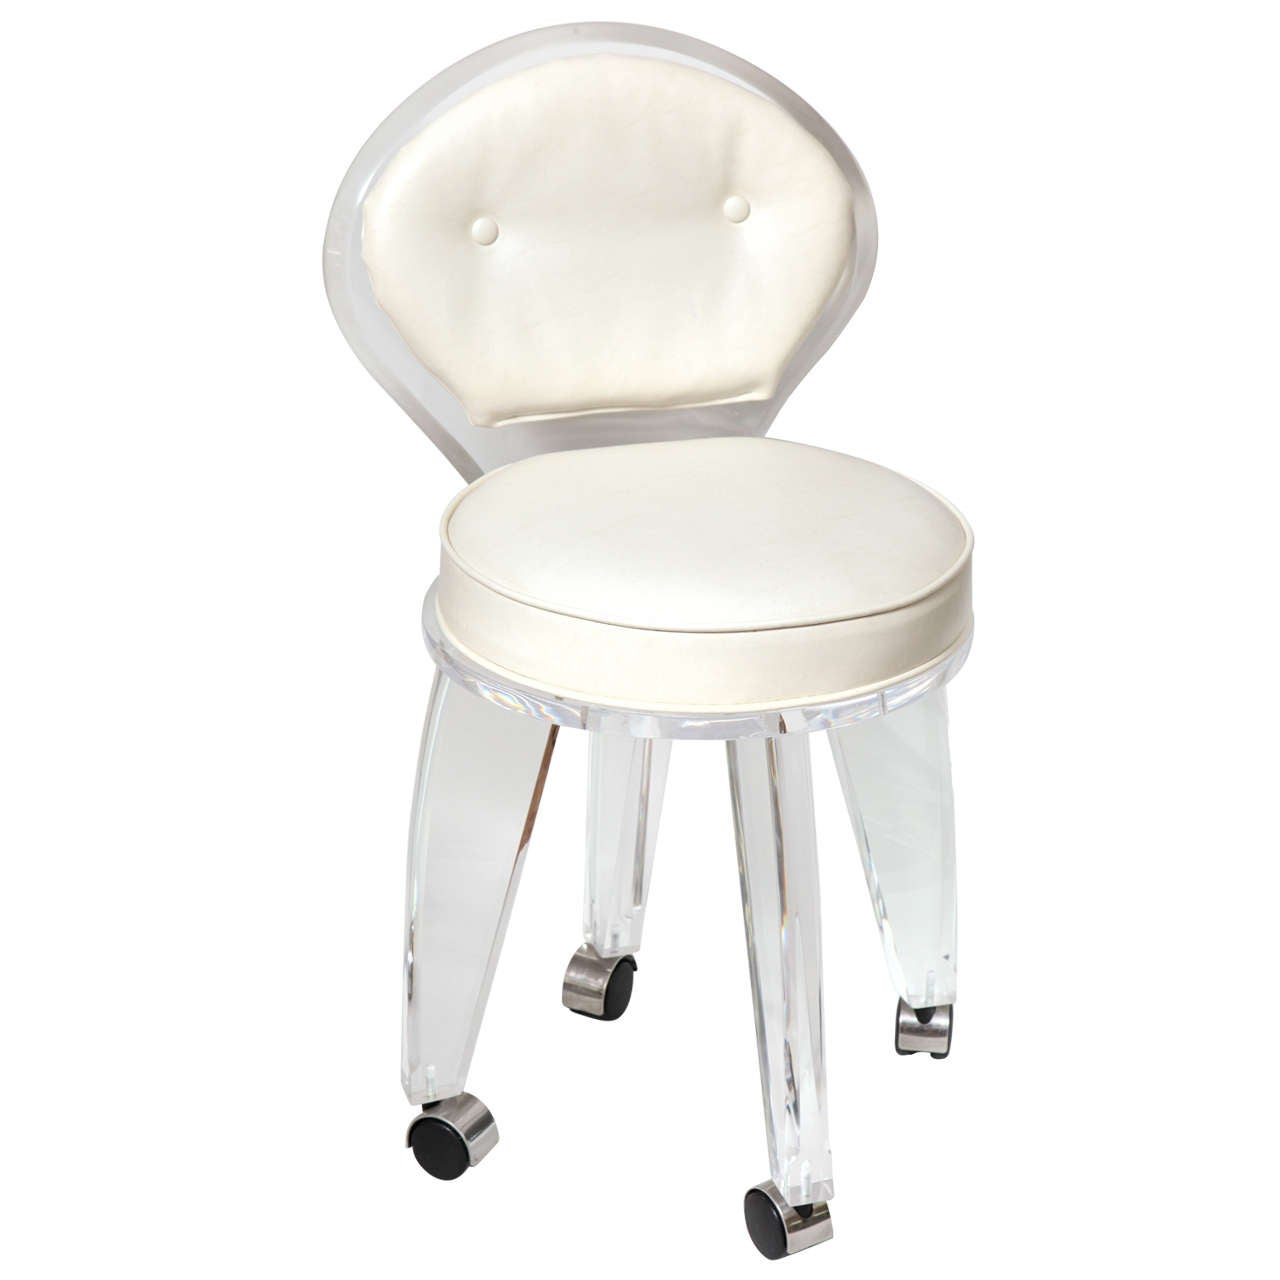 Upholstered Vanity Chair Lucite Upholstered Rolling Swivel Vanity Chair At 1stdibs